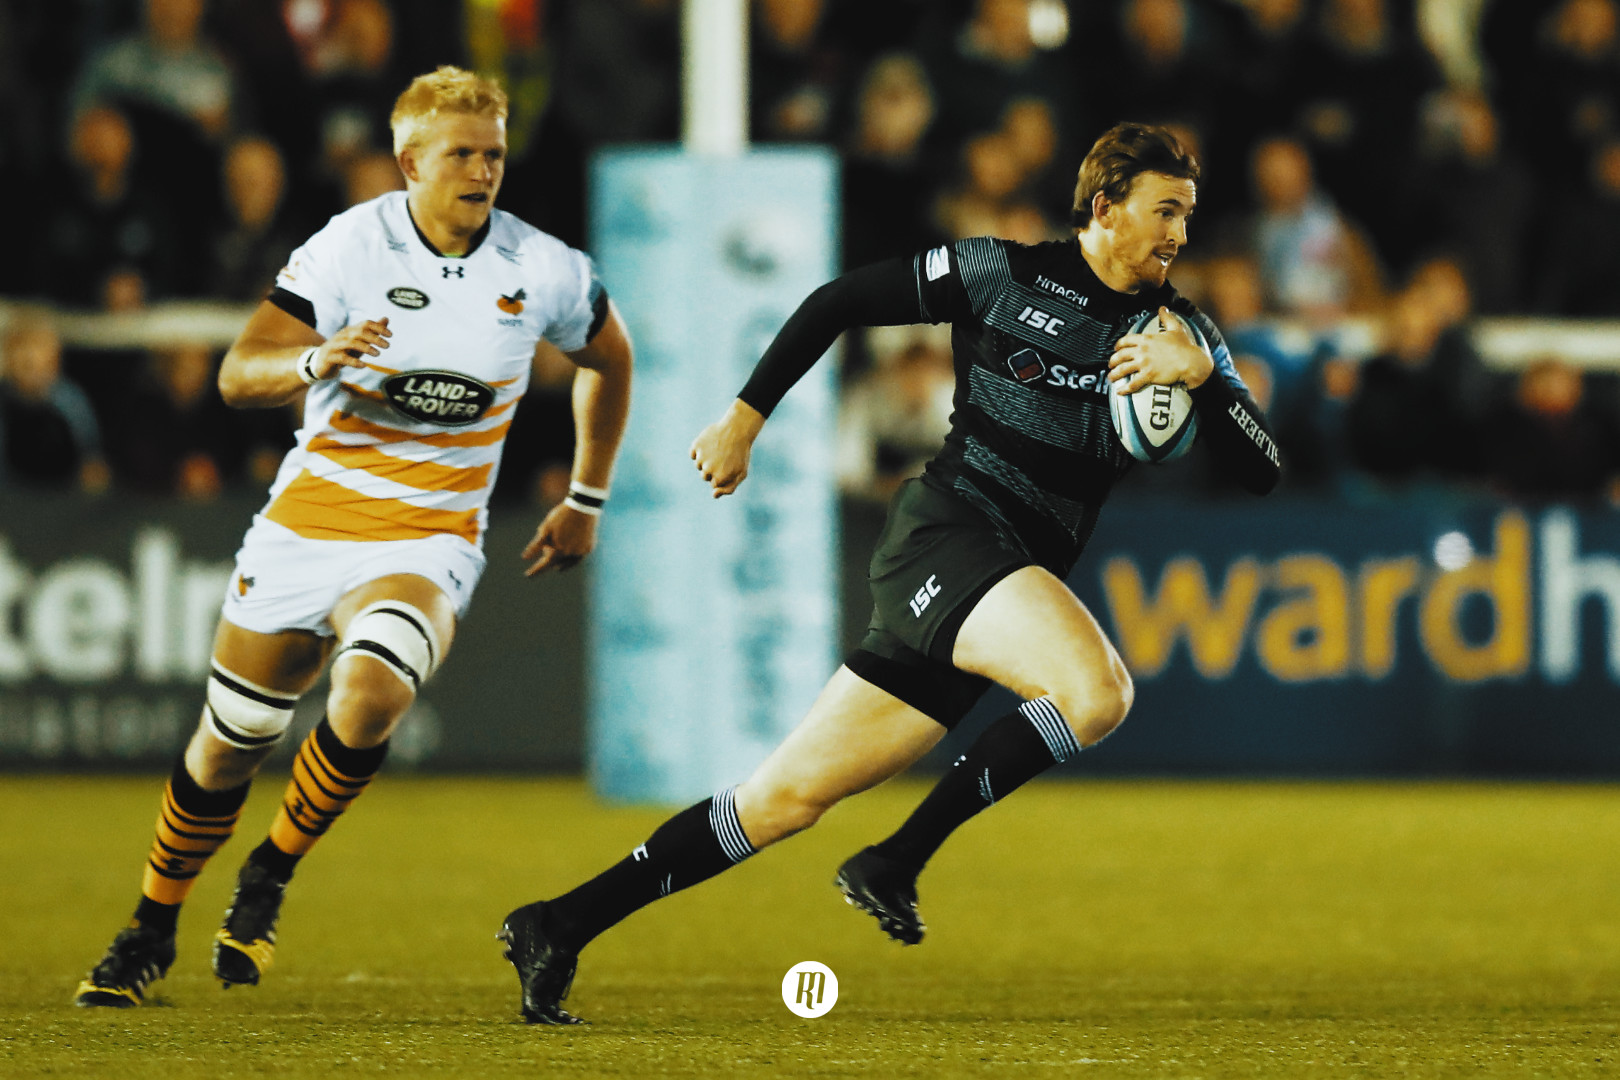 Hammersley signing could complete Sale Sharks' charge to the top